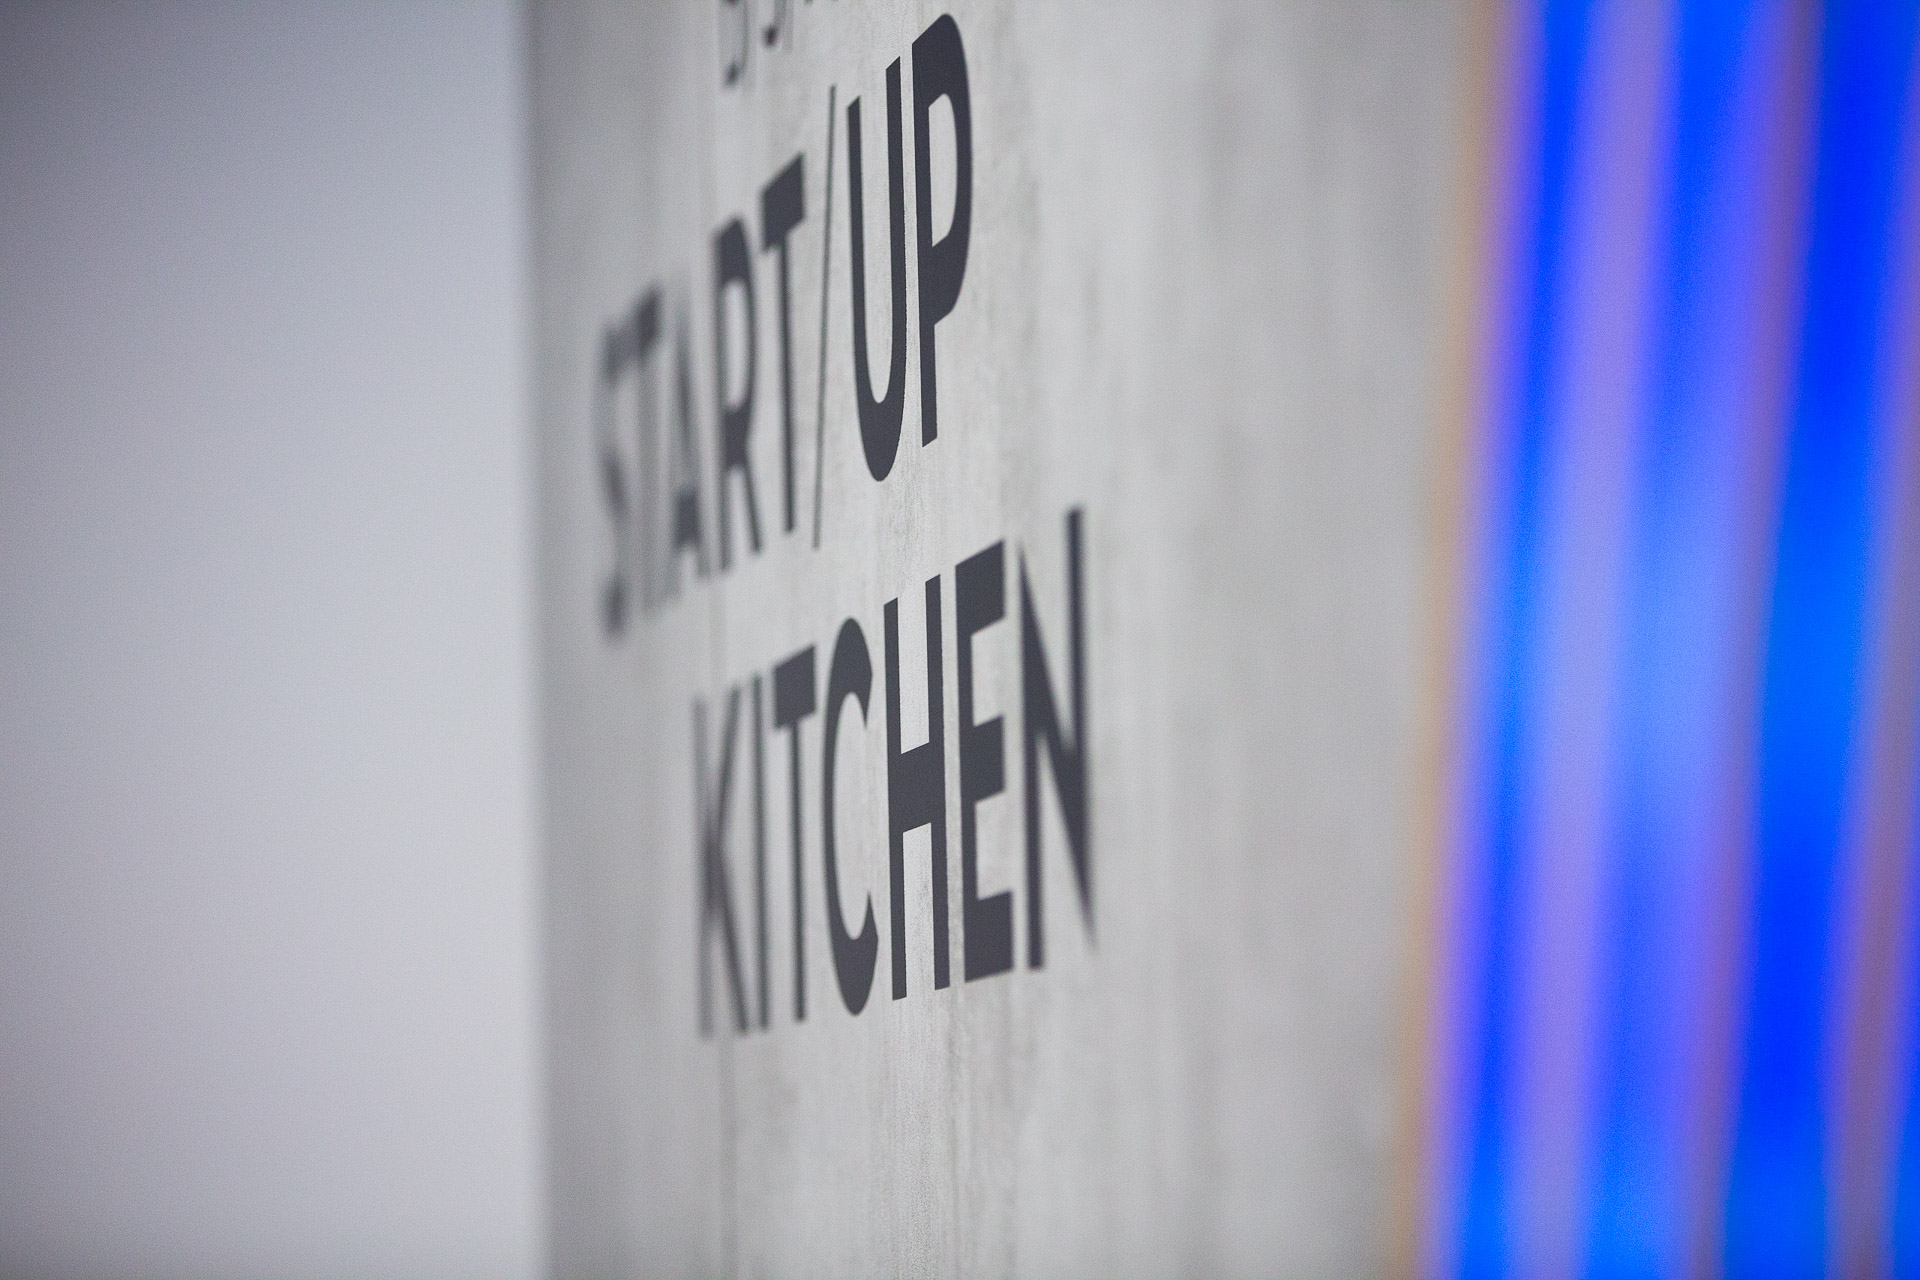 BSH Startup Kitchen Wall Sideview